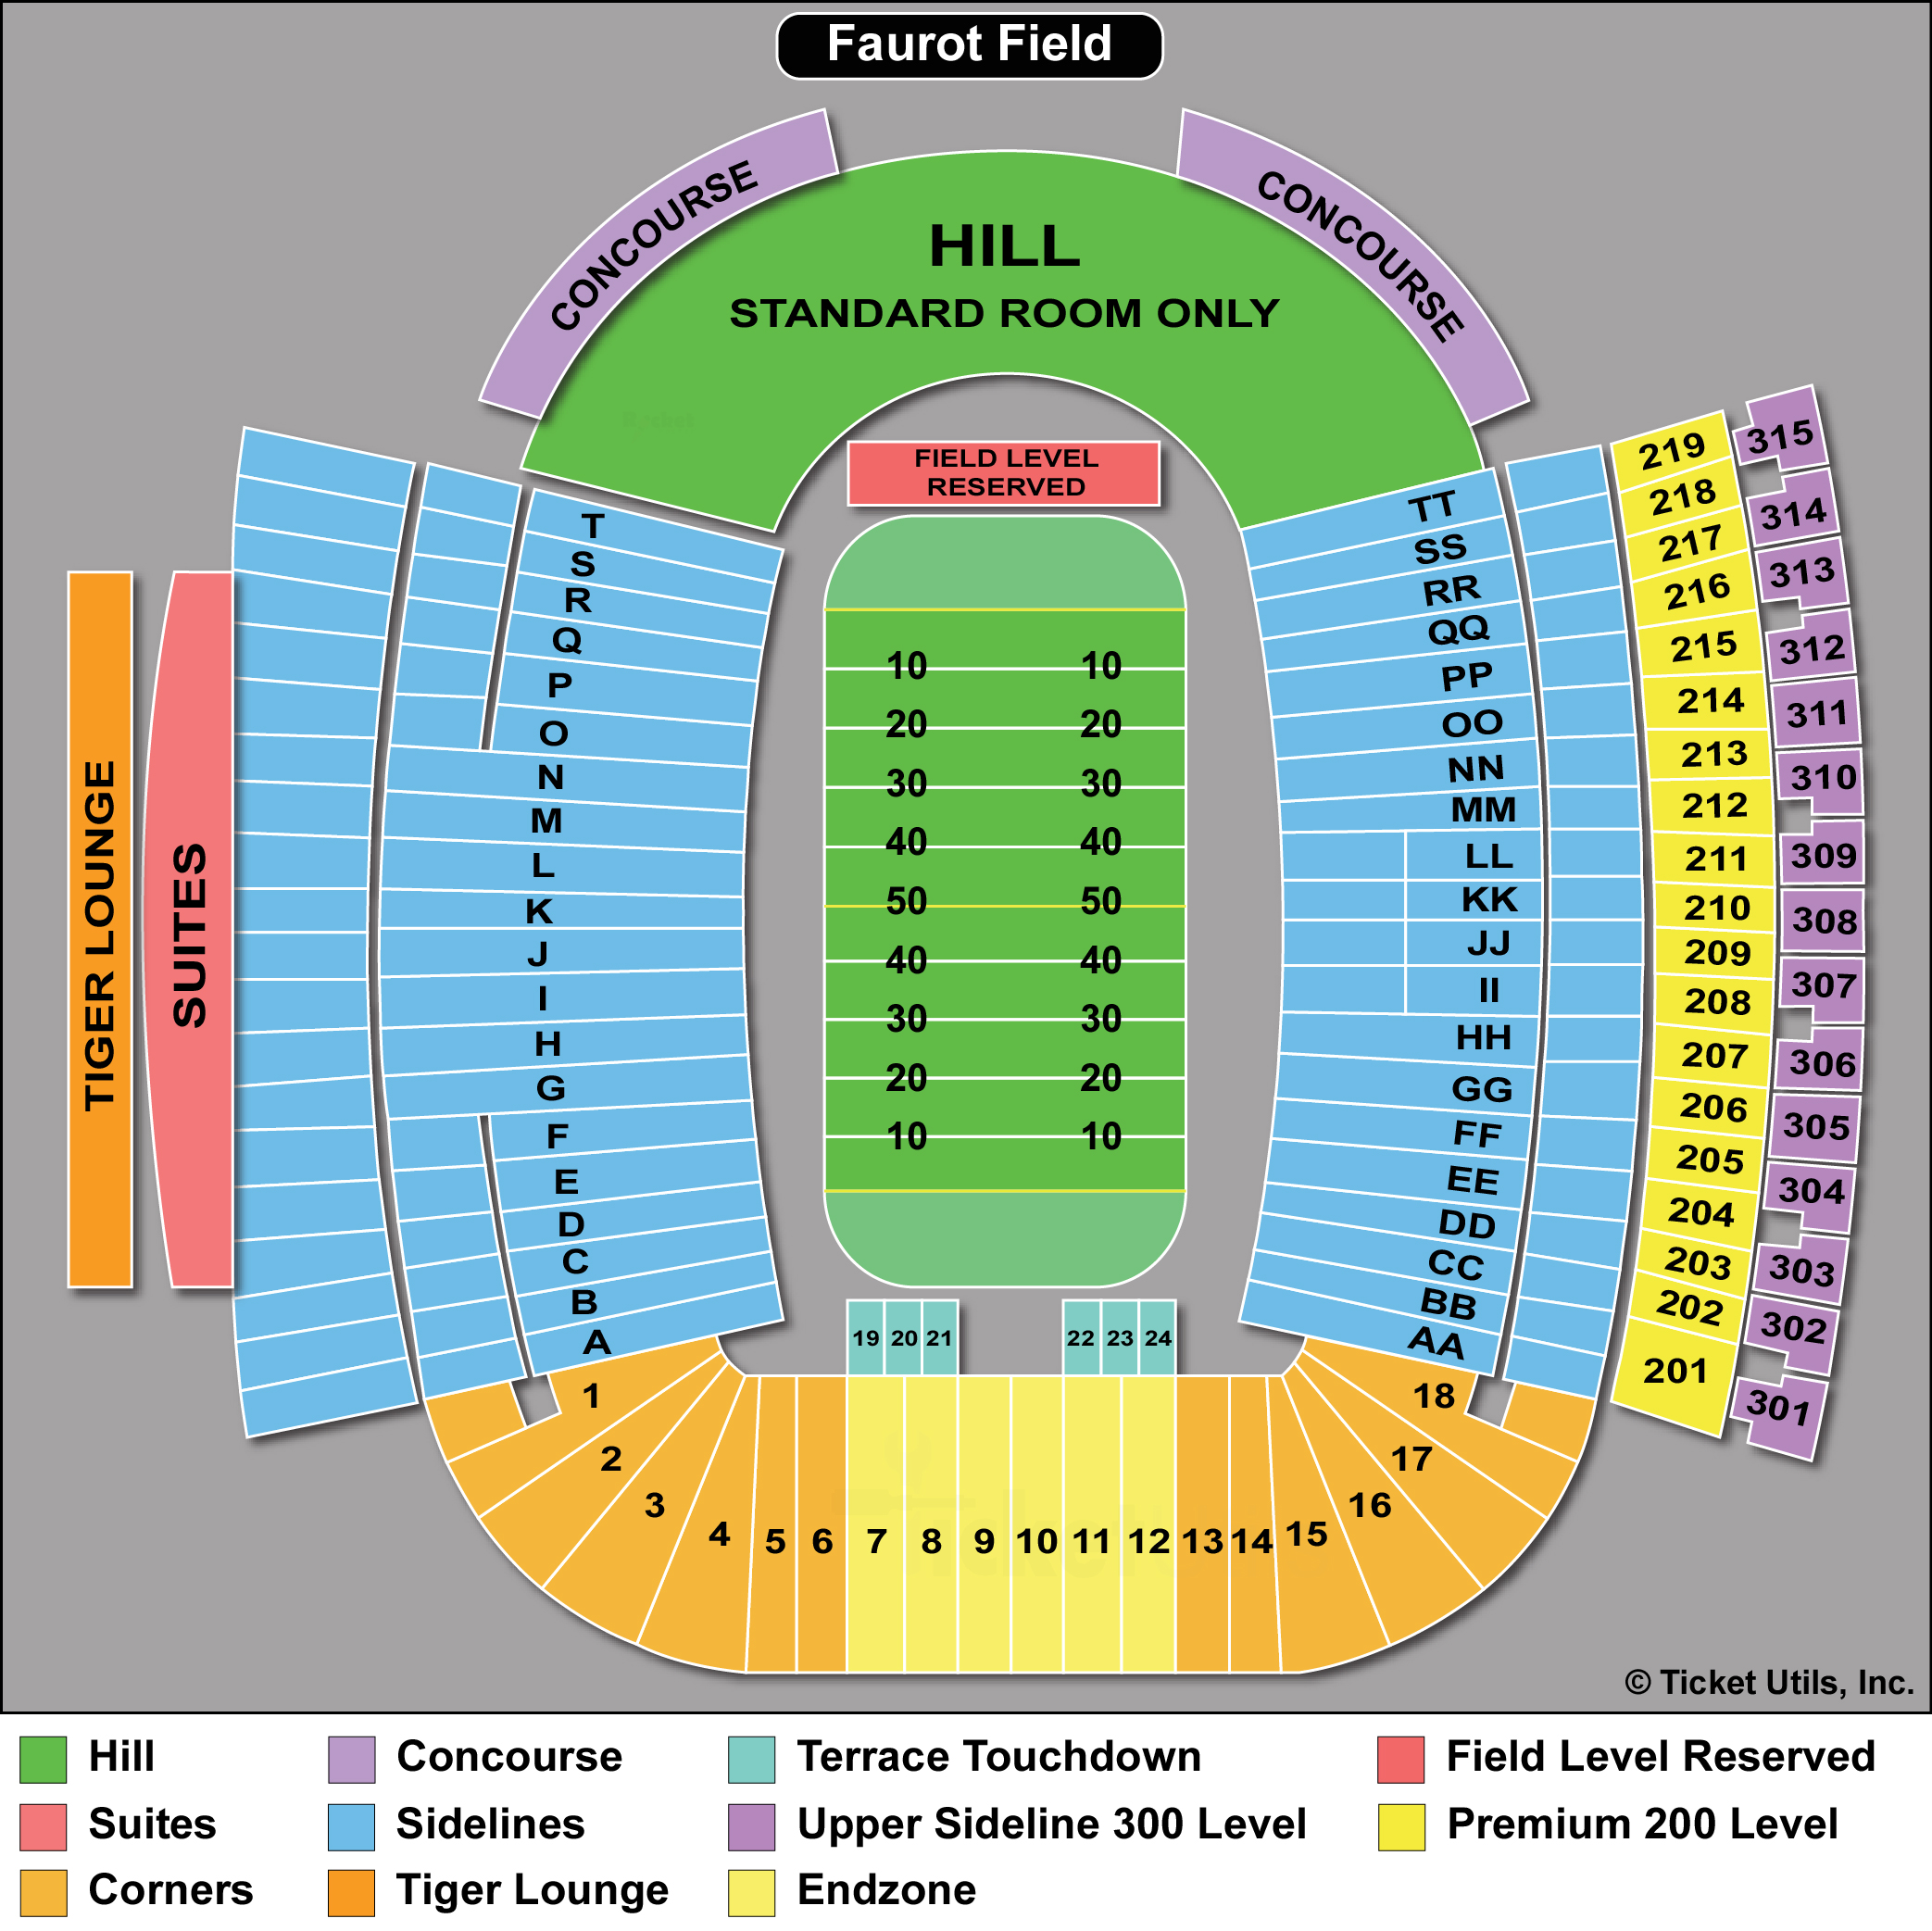 Faurot Field Seating Chart